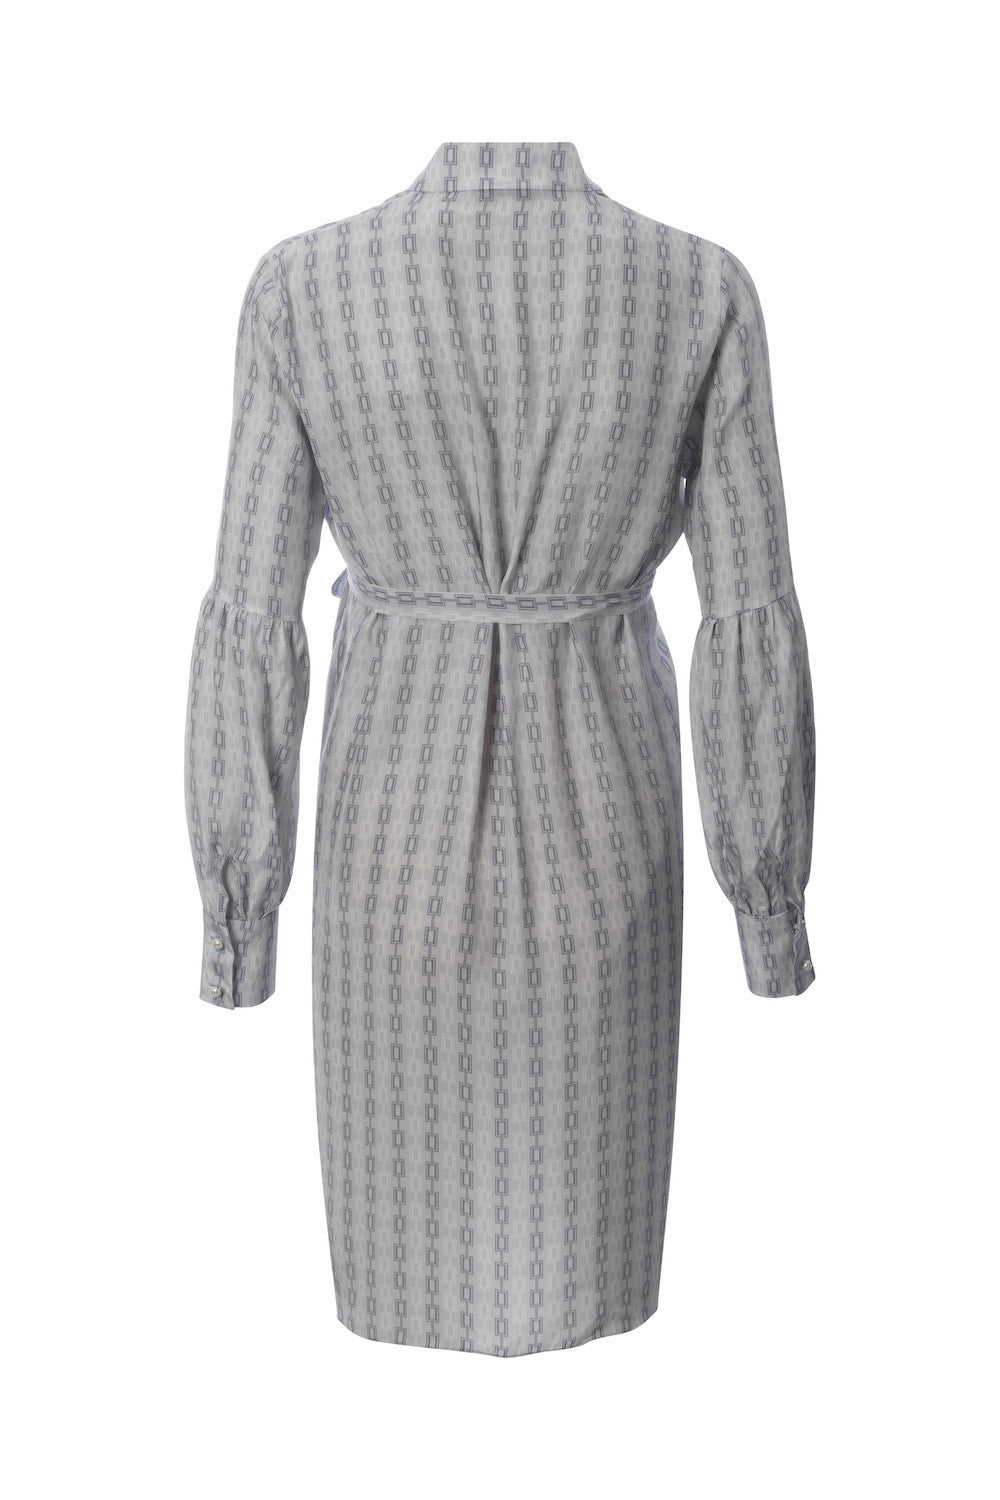 Darcy - Grey - Maternity Outlet - Madderson London